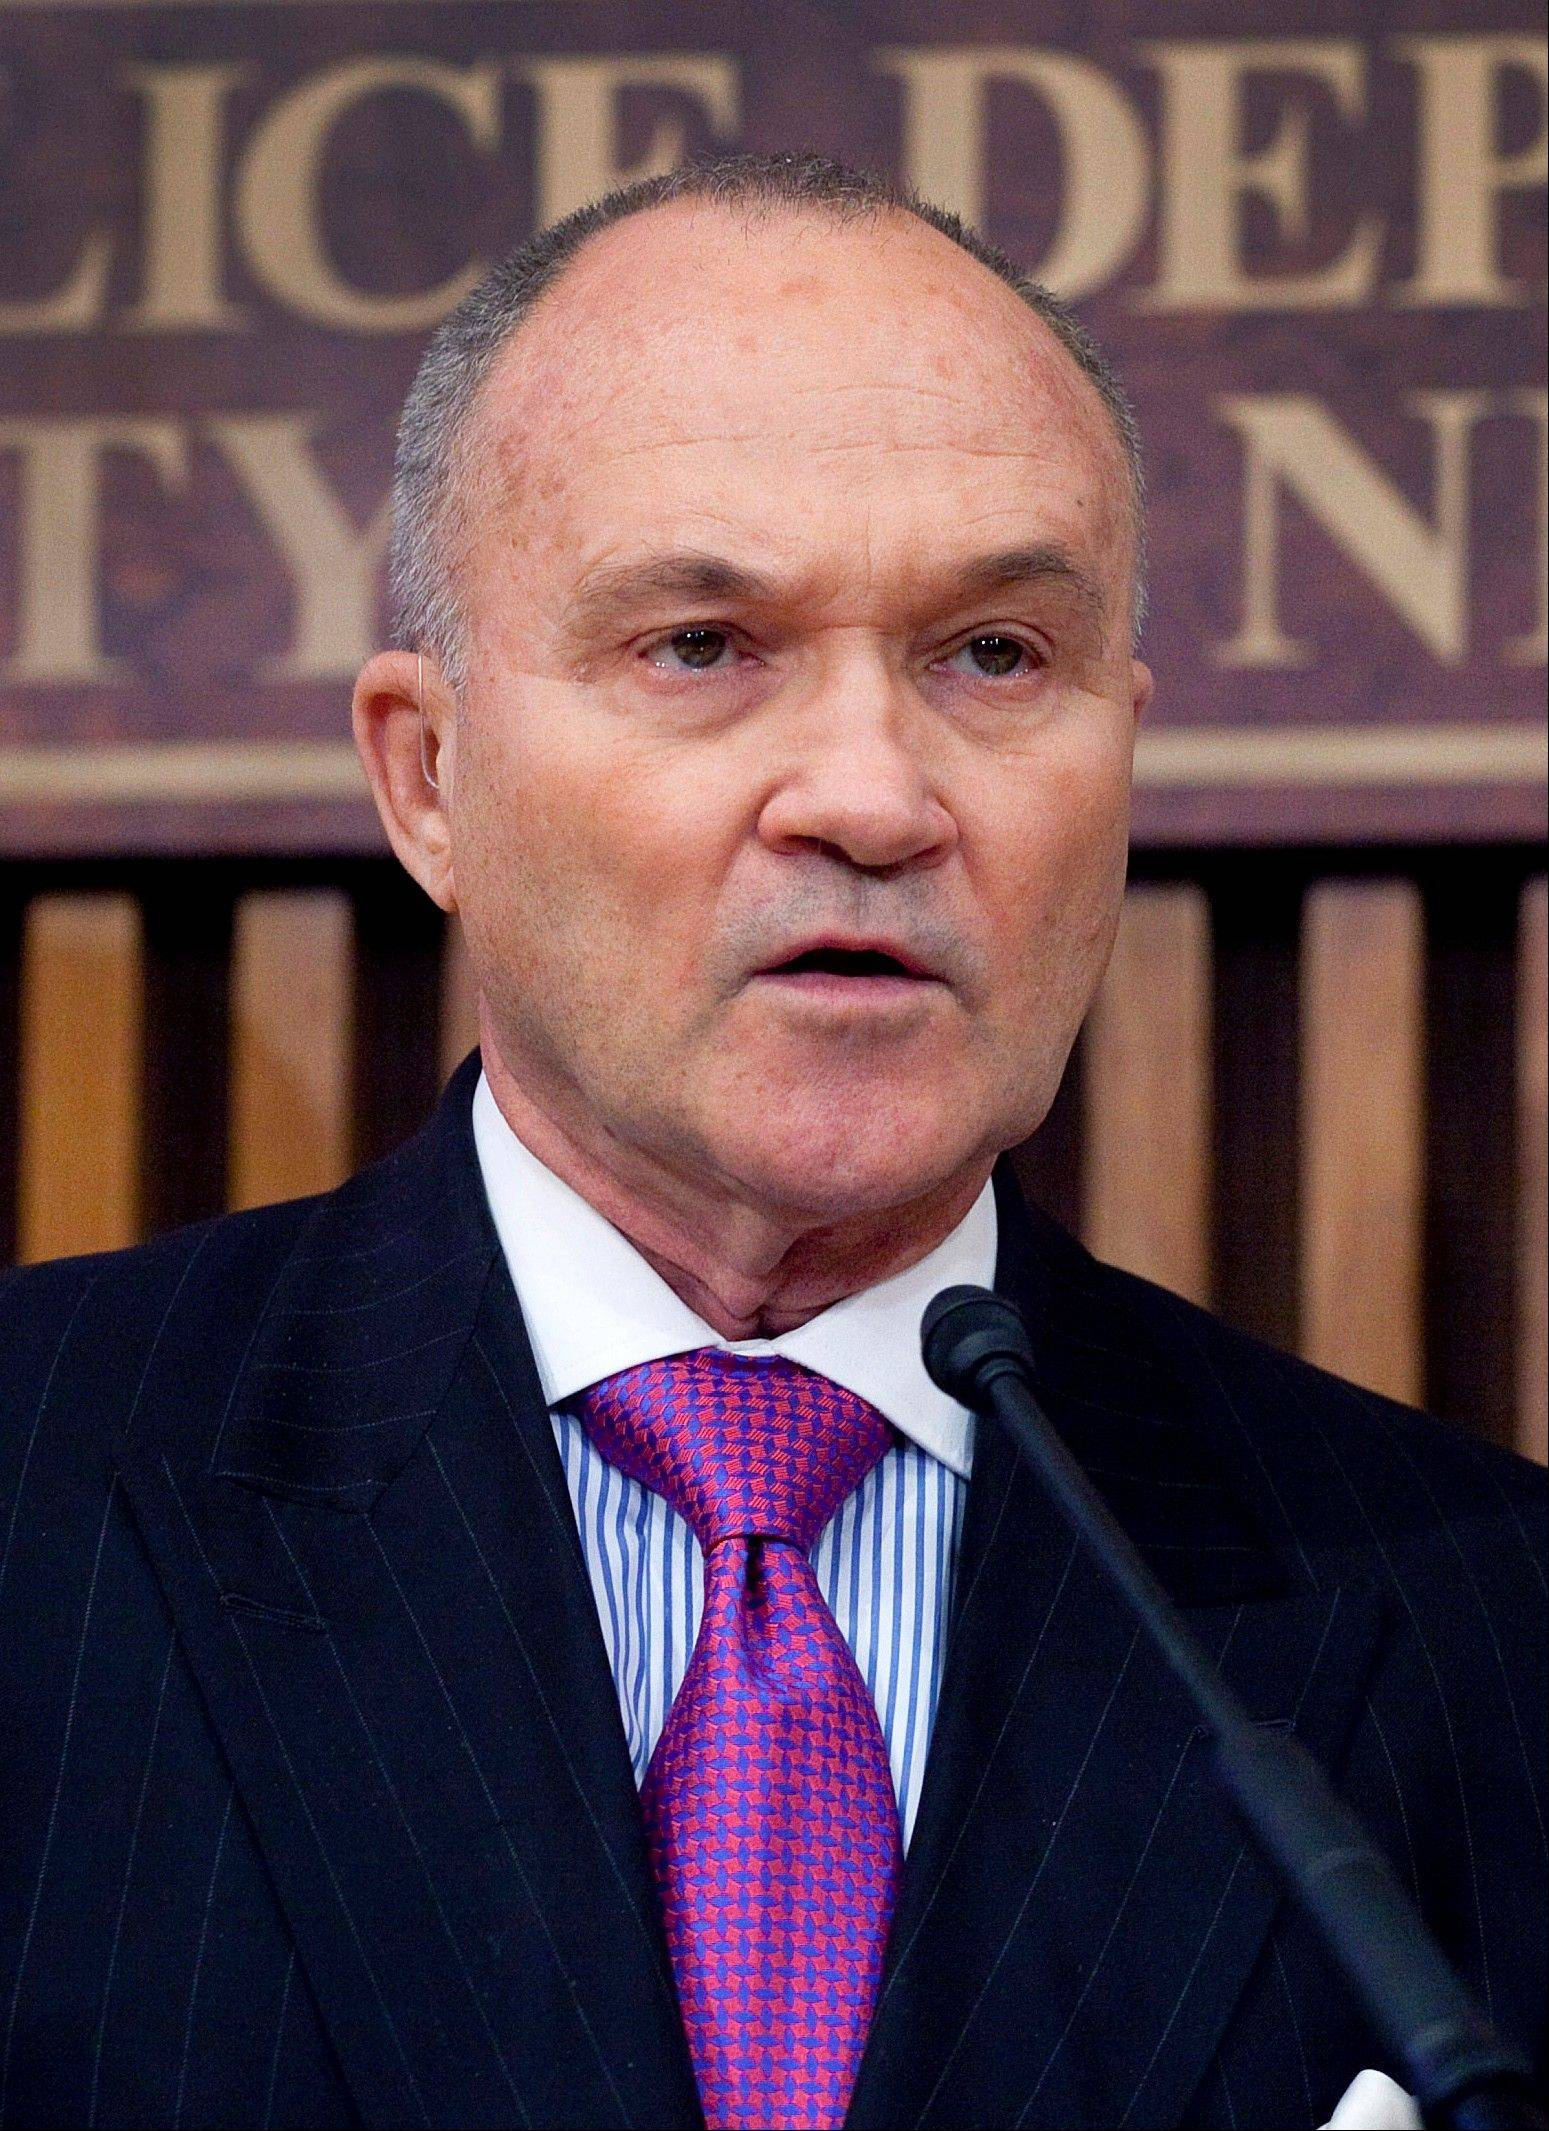 New York Police Commissioner Raymond Kelly